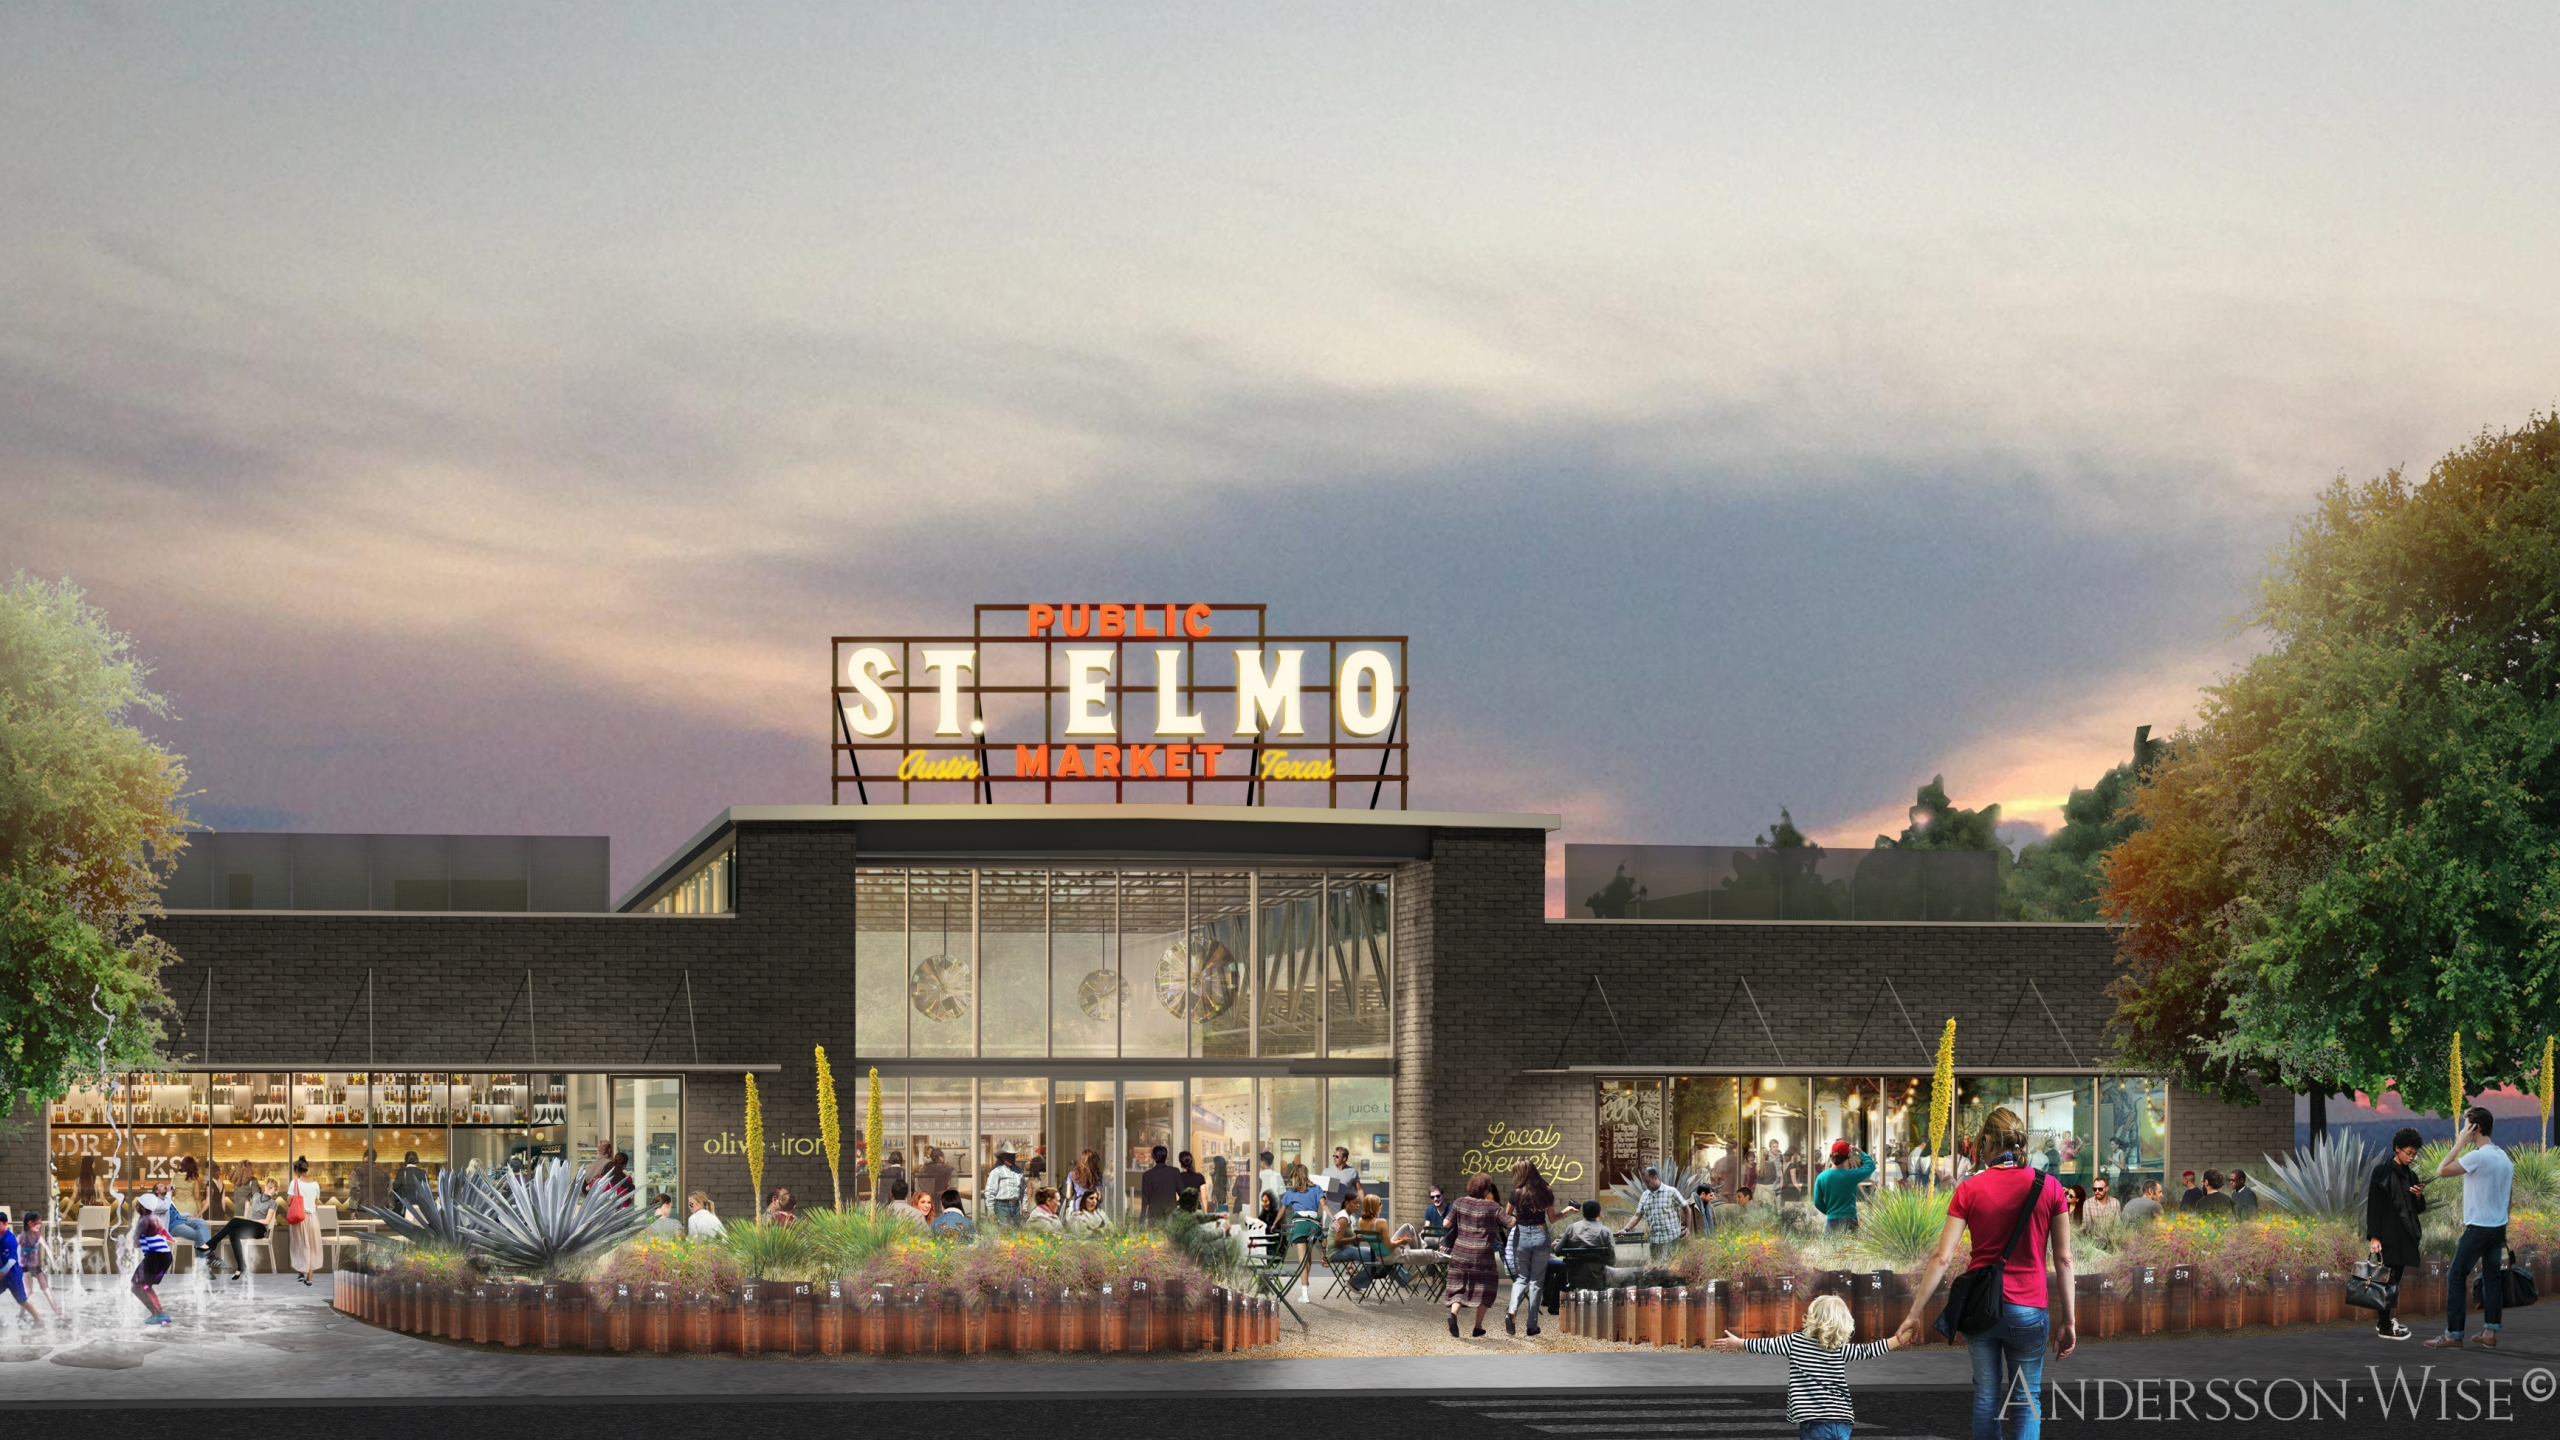 Lick and Jensen Ackles' brewery to be part of St  Elmo